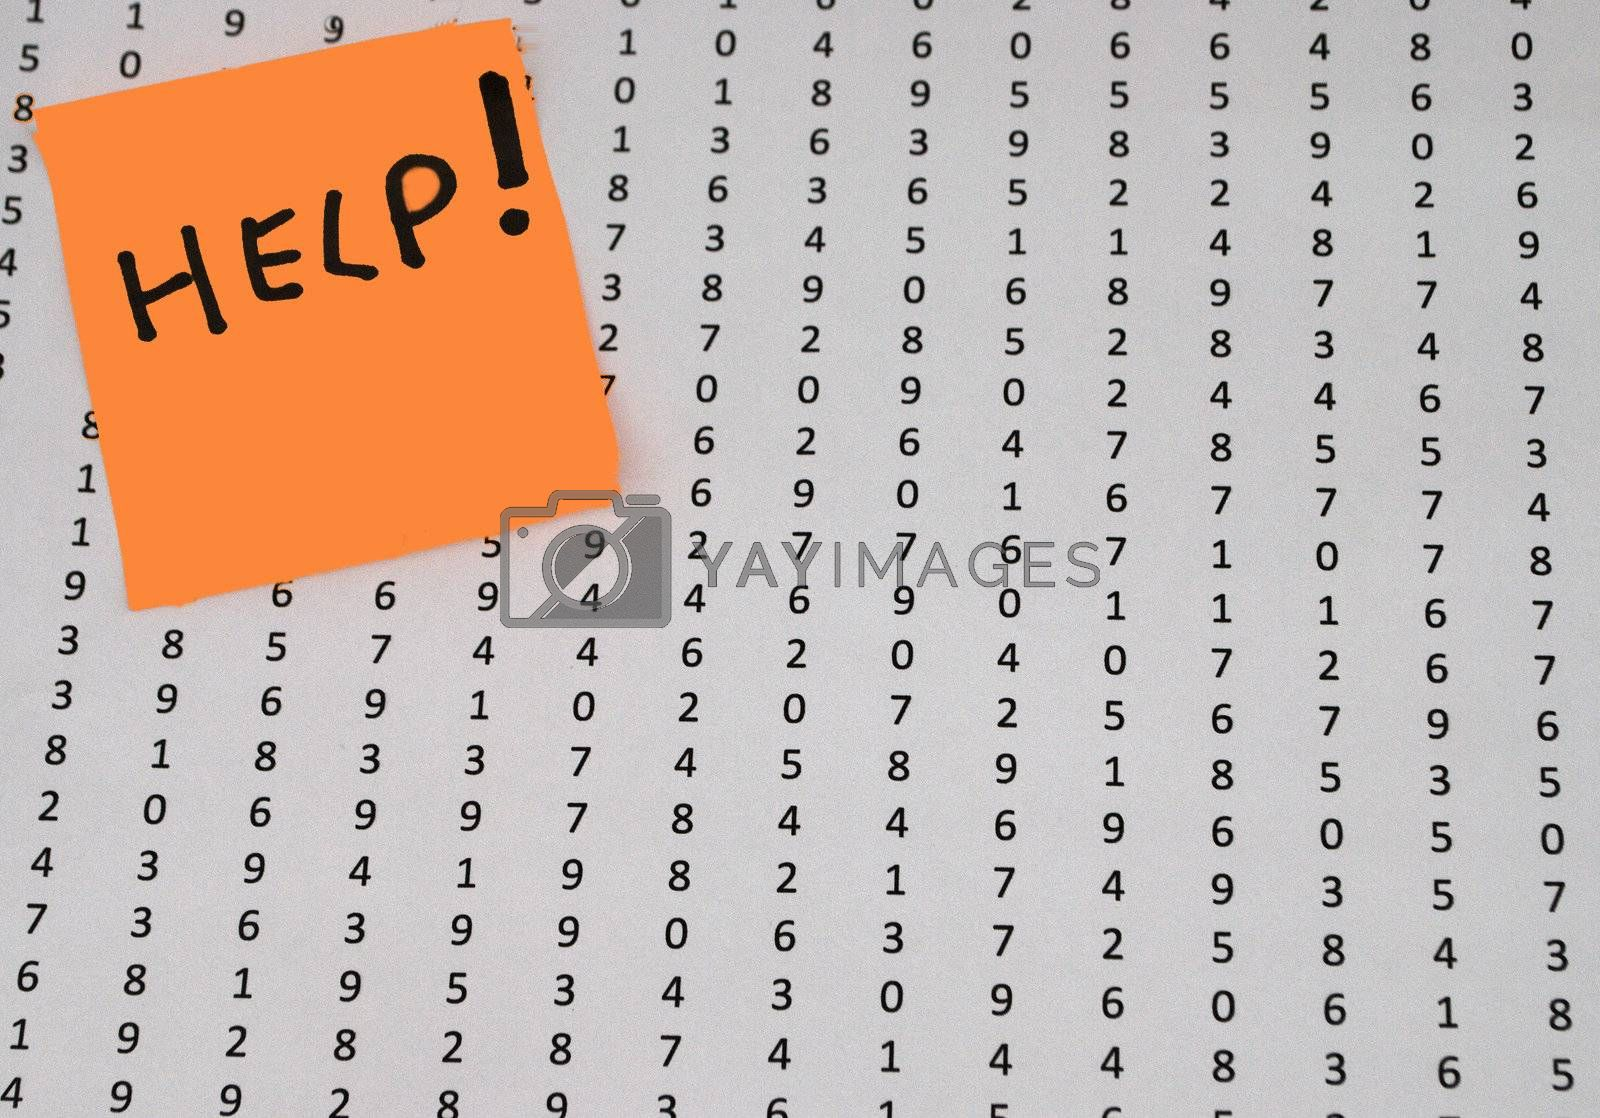 Lots of random digits with help post it